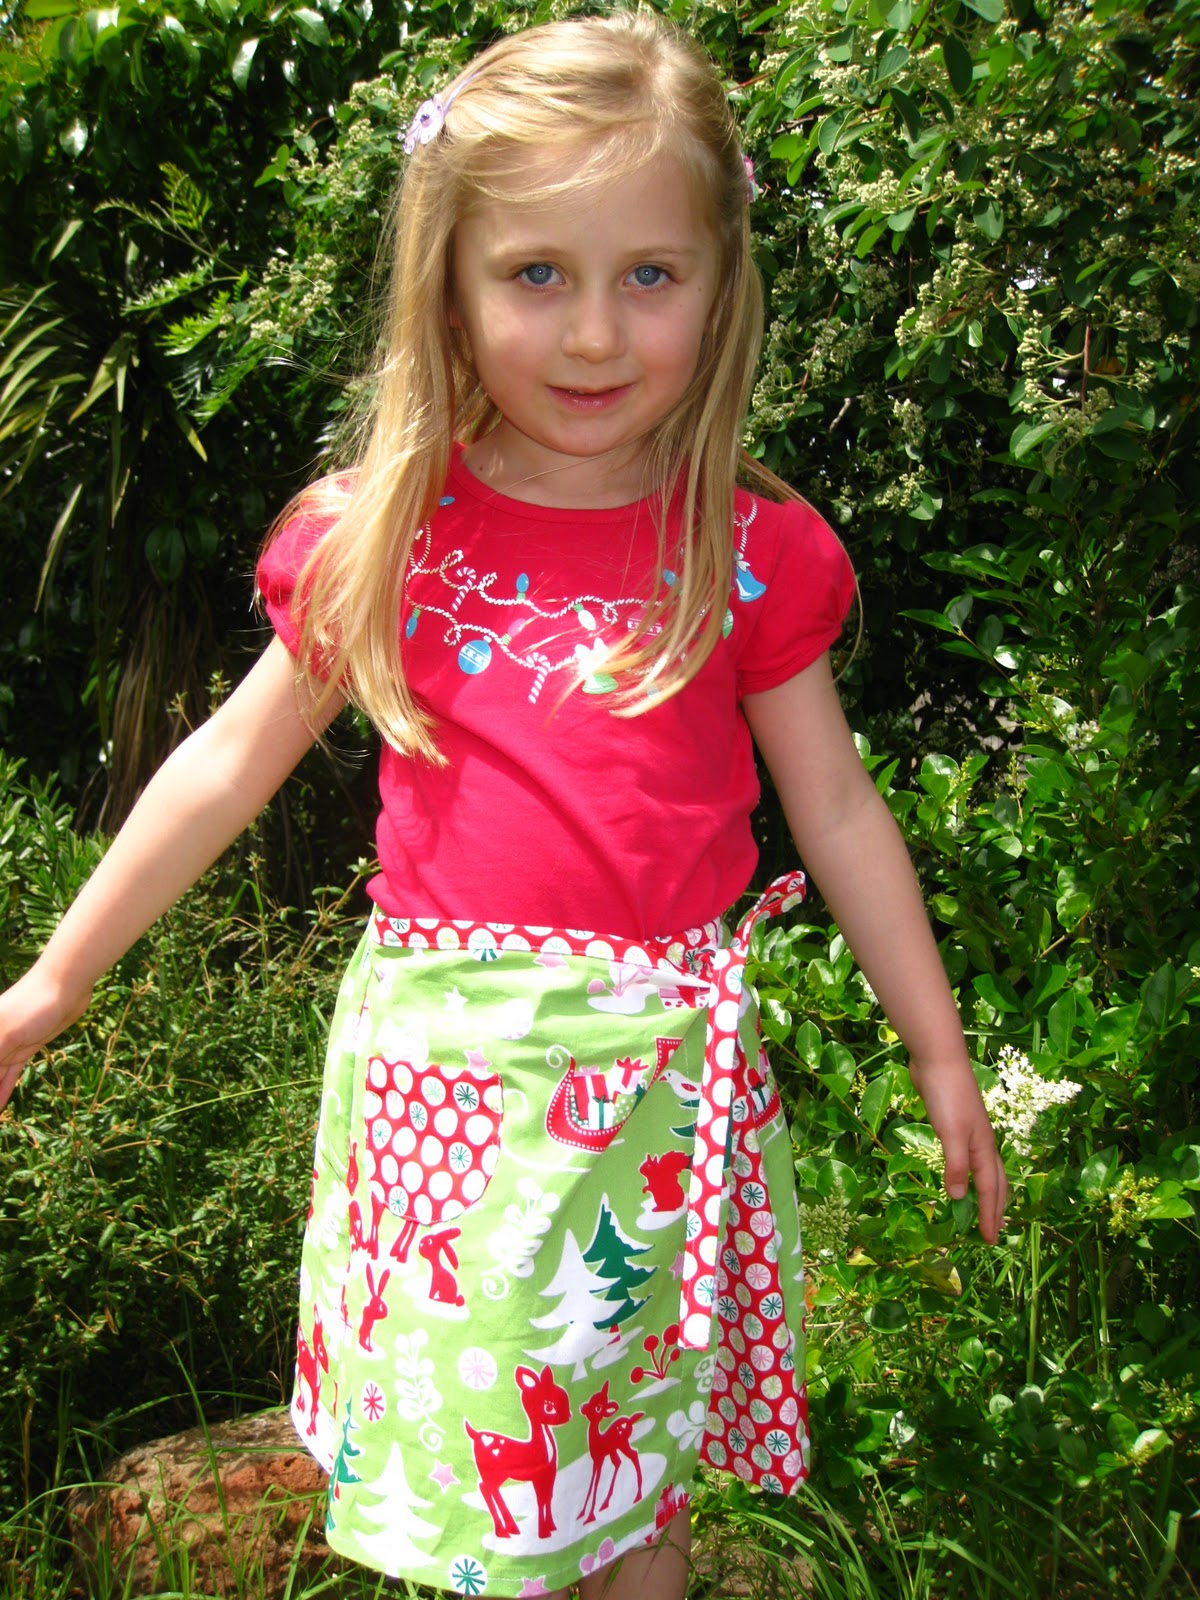 Handmade In A Beautiful Pea Green Boat: Christmas dresses